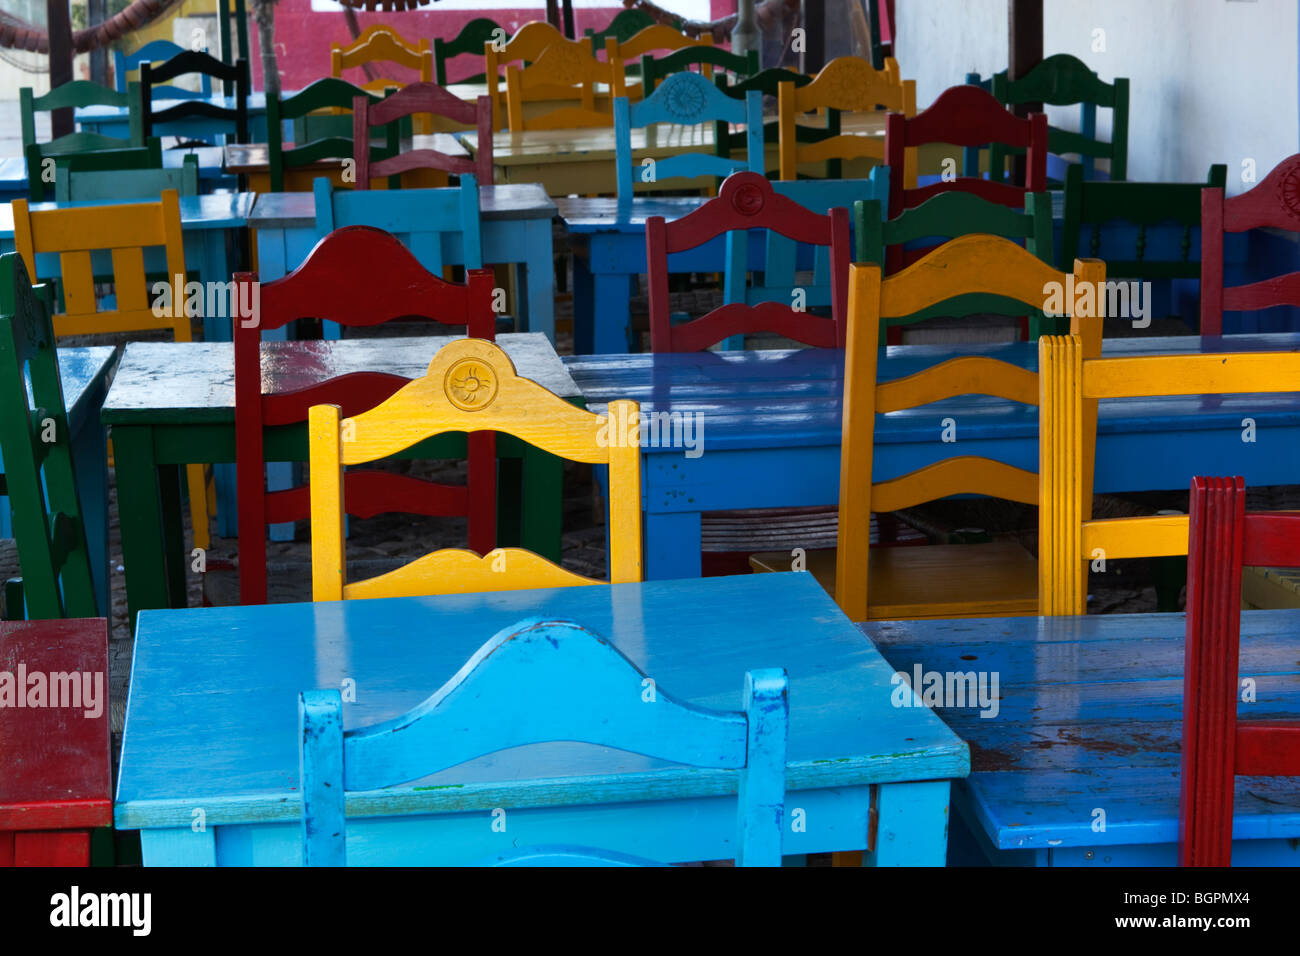 rows of colourful tables and chairs - Stock Image